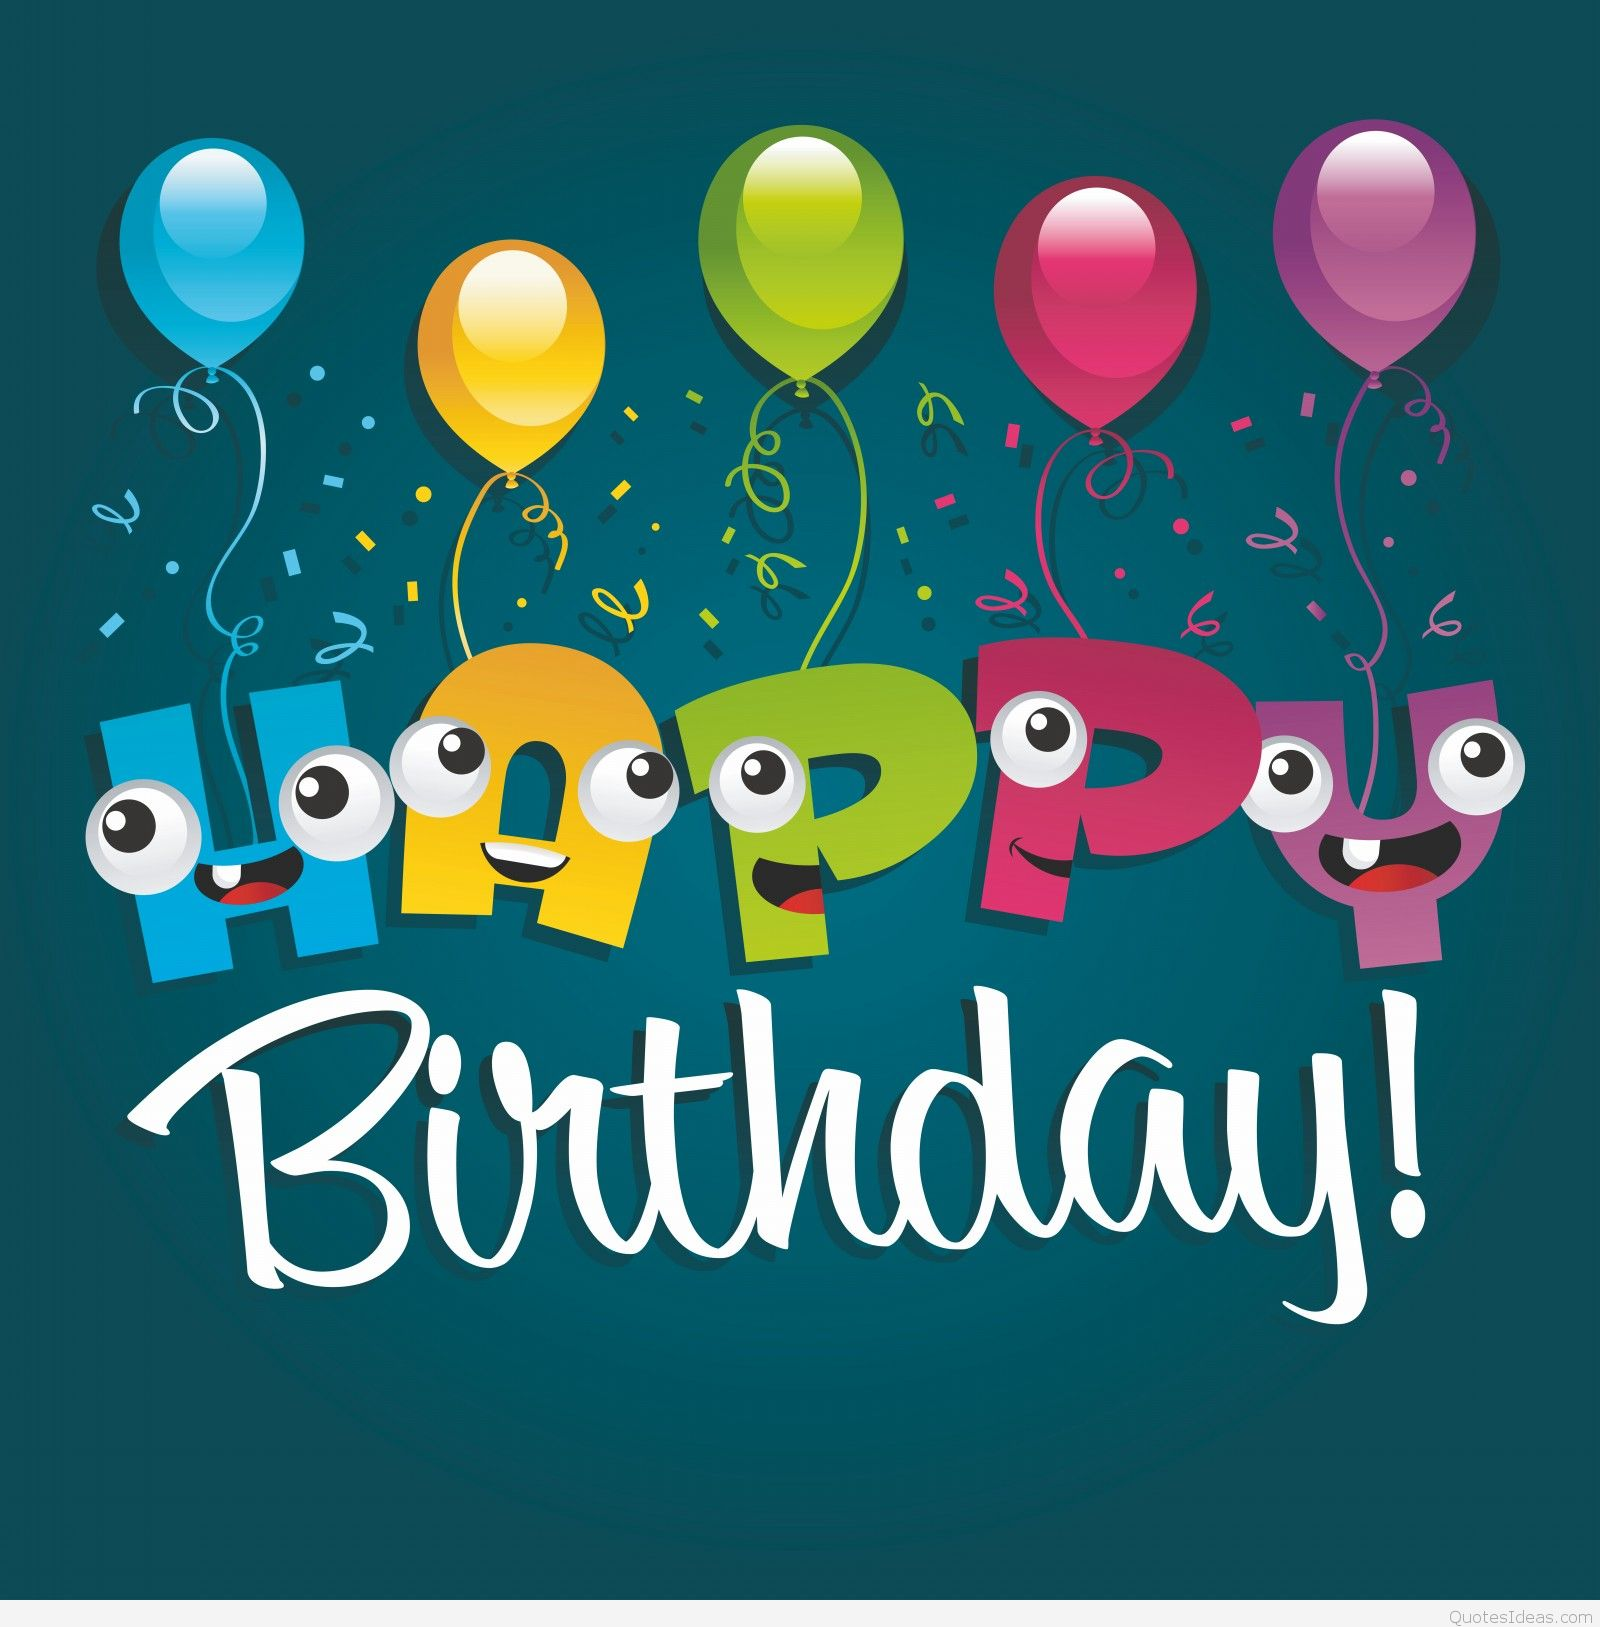 birthday wallpaper images ; happy-birthday-wishes-for-a-man-wallpaper-4